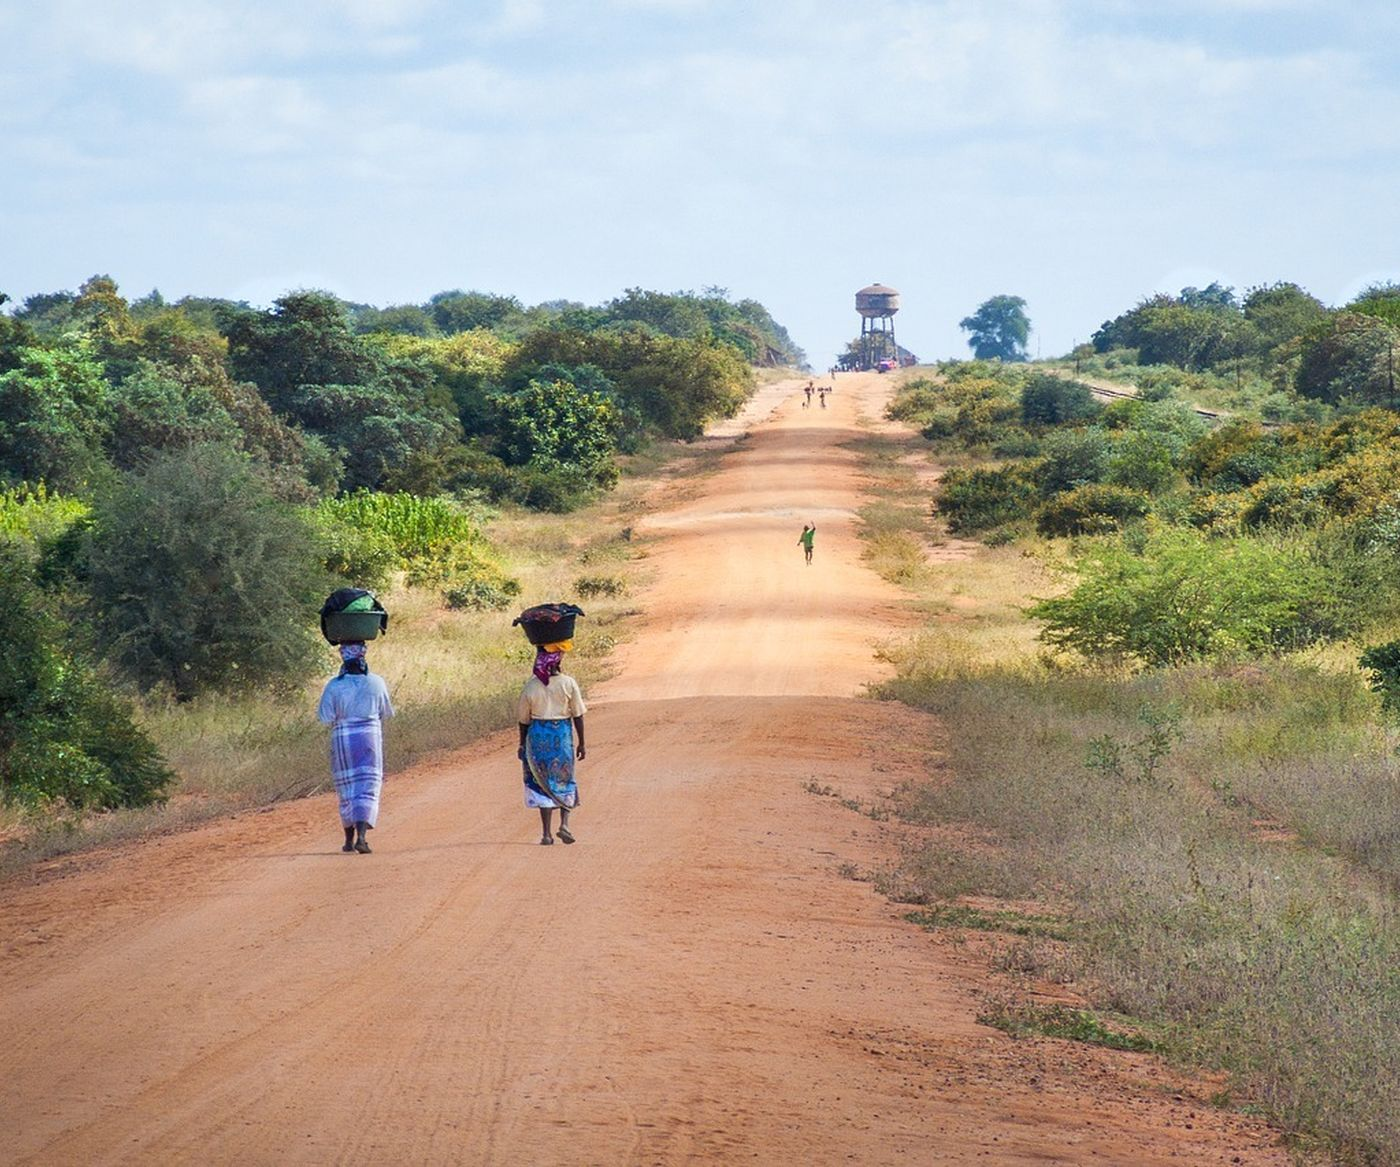 African Women Walking Along Road 2983081 1280